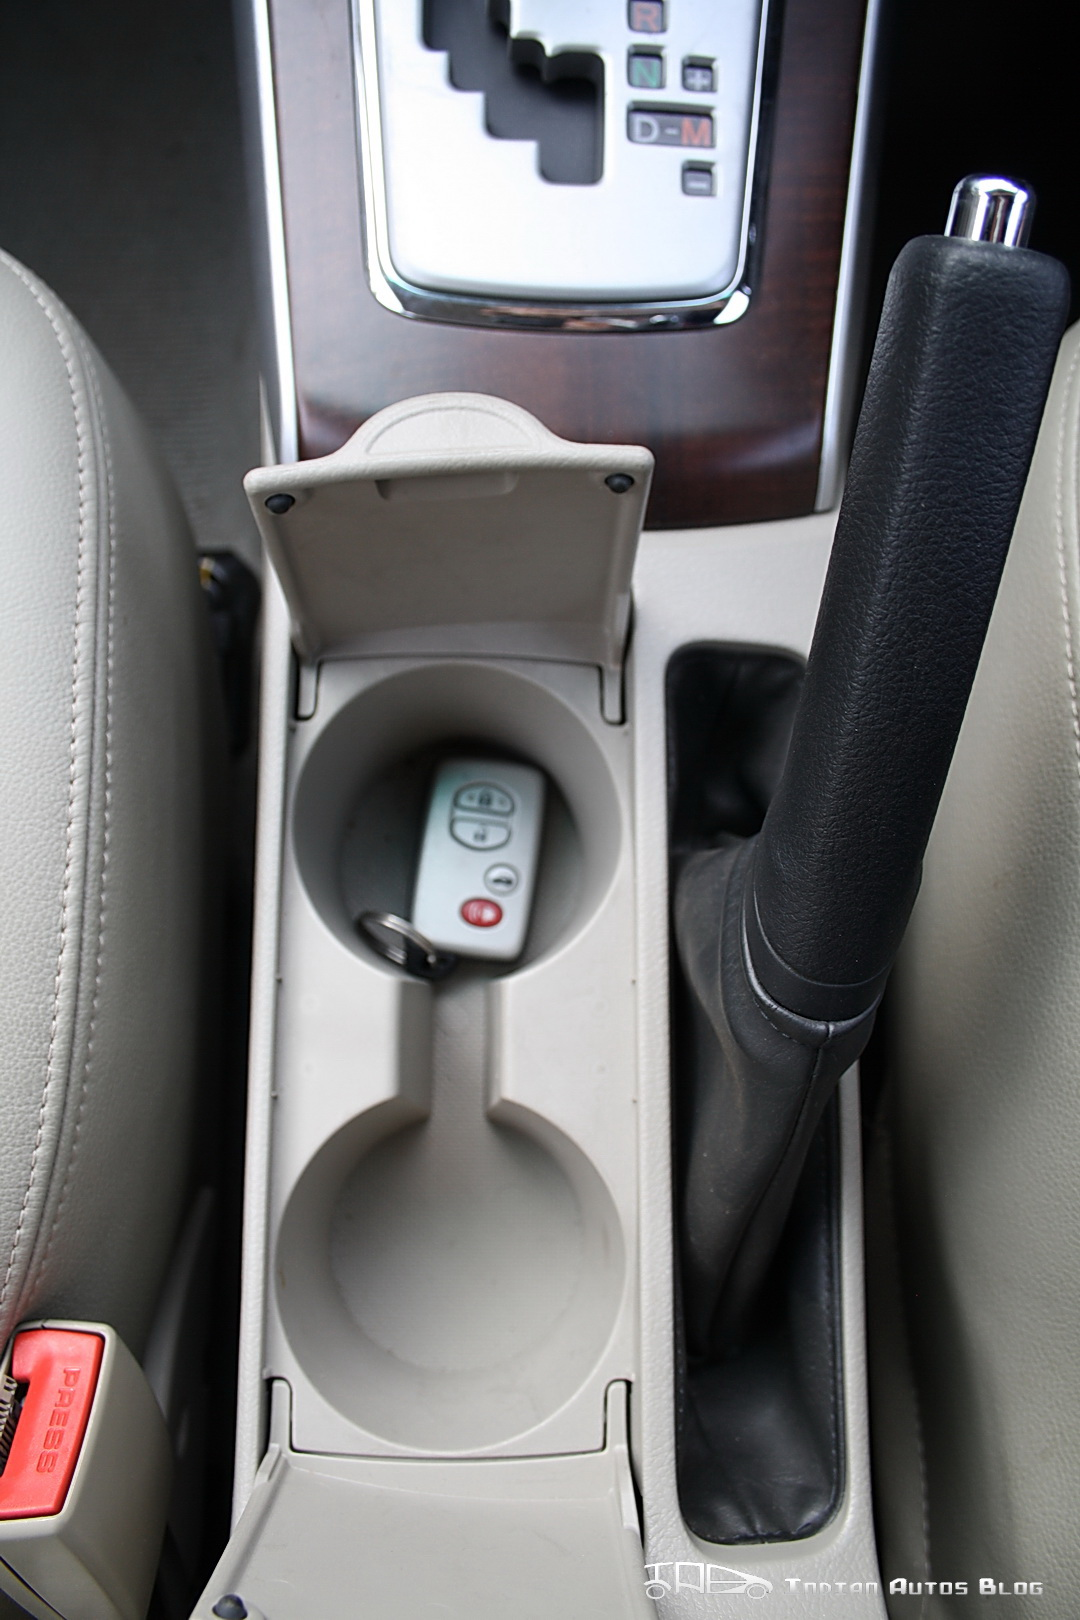 Facelifted Toyota Corolla Altis front cupholders